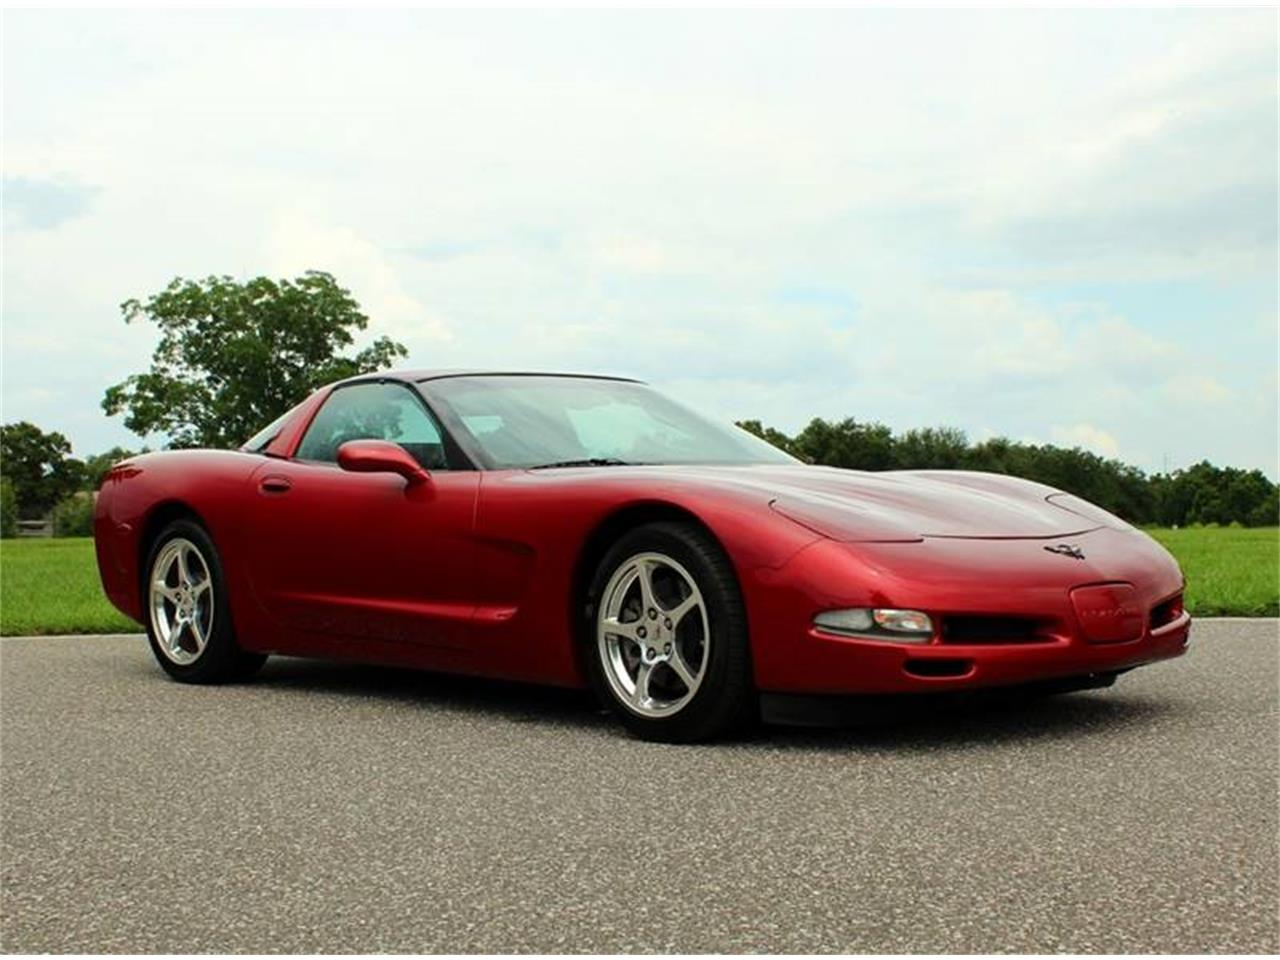 Large Picture of 2004 Corvette - $13,900.00 Offered by PJ's Auto World - QCZ4